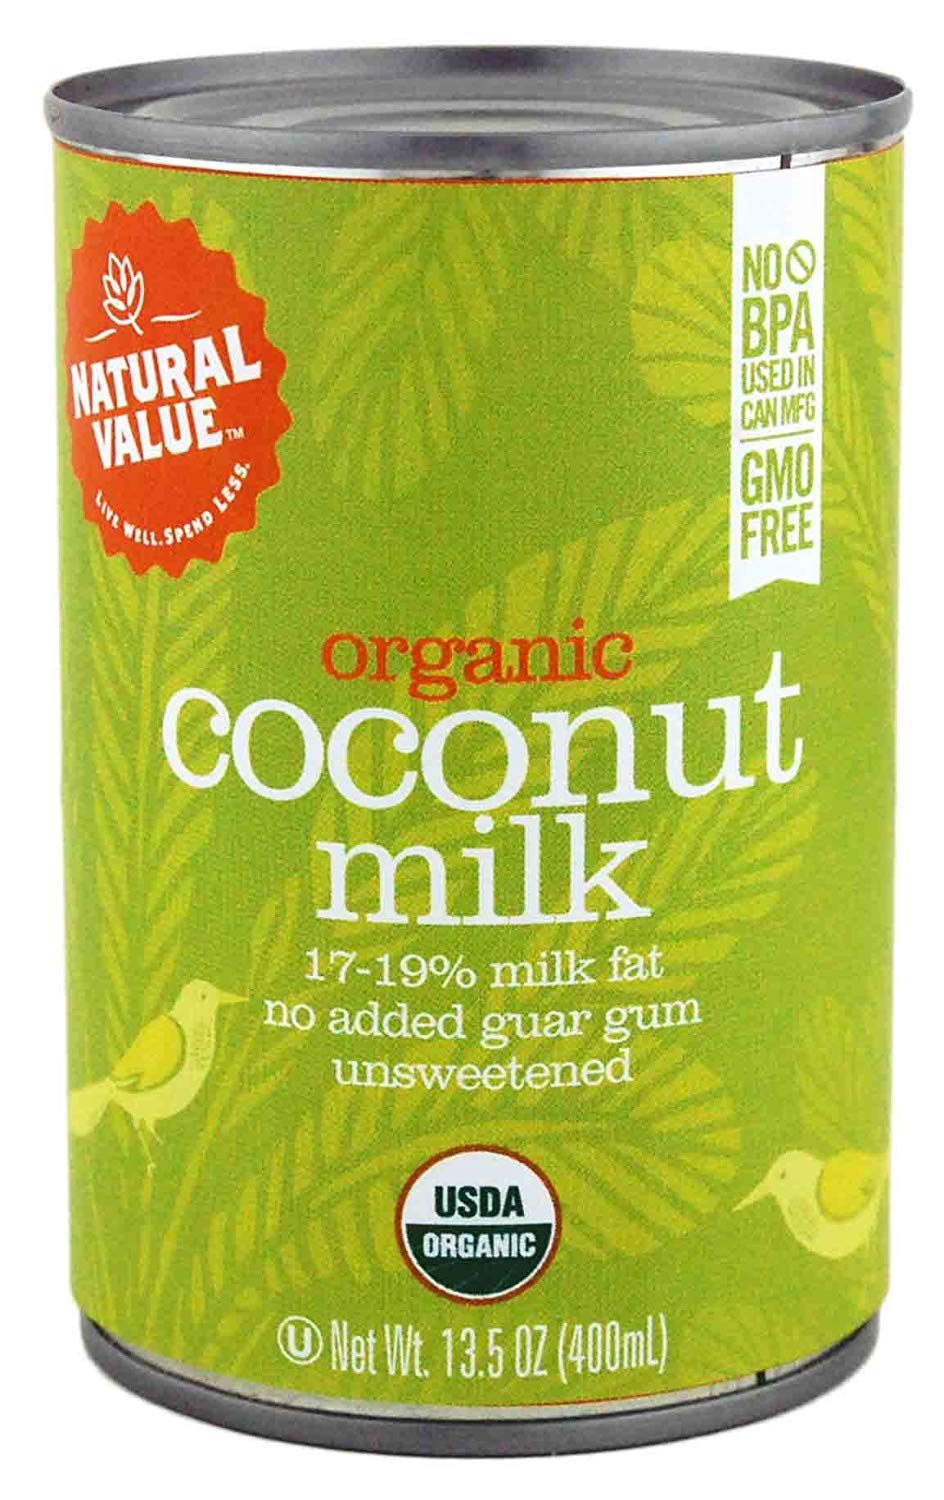 Organic Coconut Milk, No Guar Gum (12 cans) - My Simple Changes